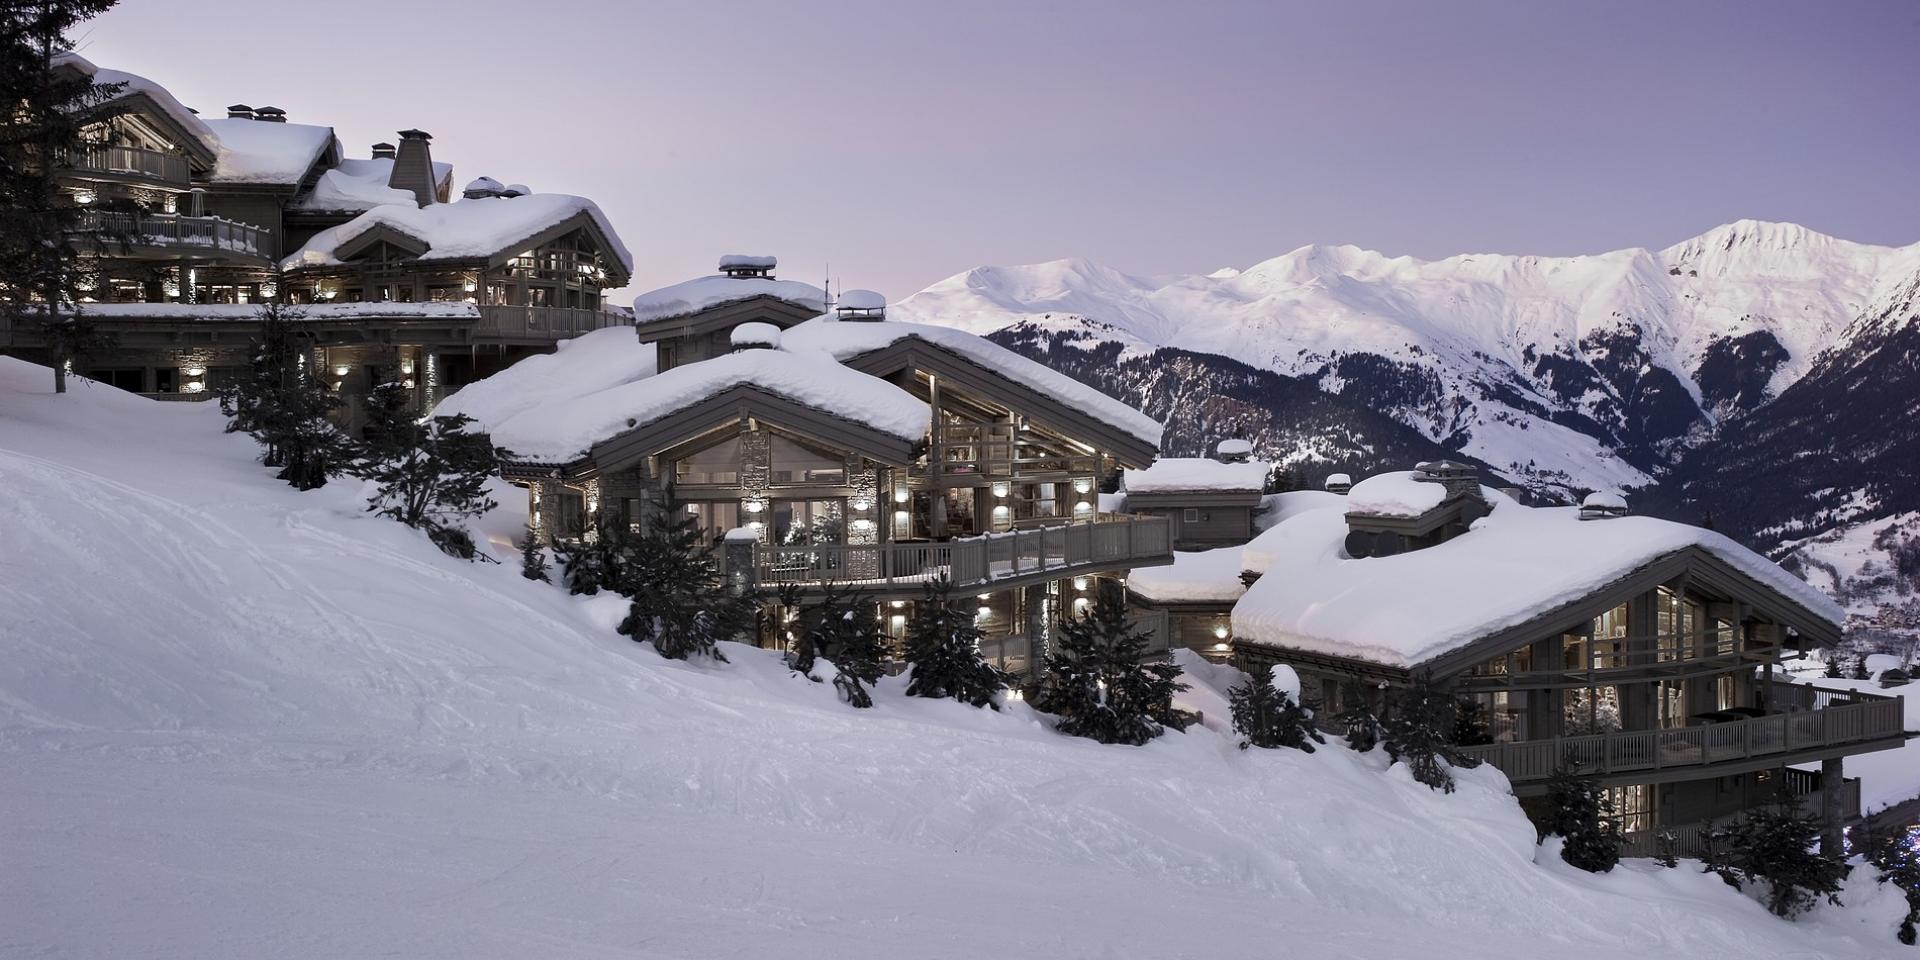 BOOK YOUR SKI HOLIDAYS NOW